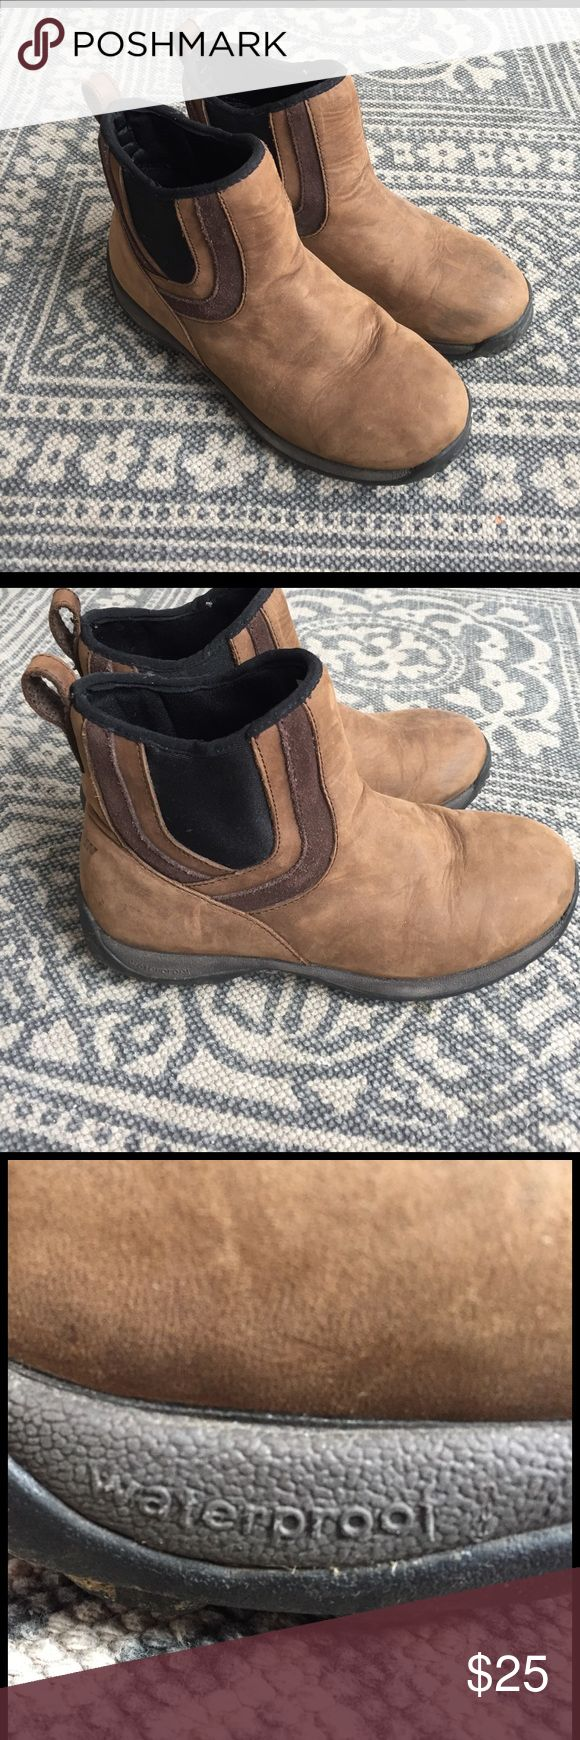 Baffin brand ankle snow boots in size 7 These are leather, fully insulated and waterproof boots with traction on the soles. They are easy to slip on and off and are super lightweight and cute with jeans and casual dresses. Baffin Shoes Winter & Rain Boots